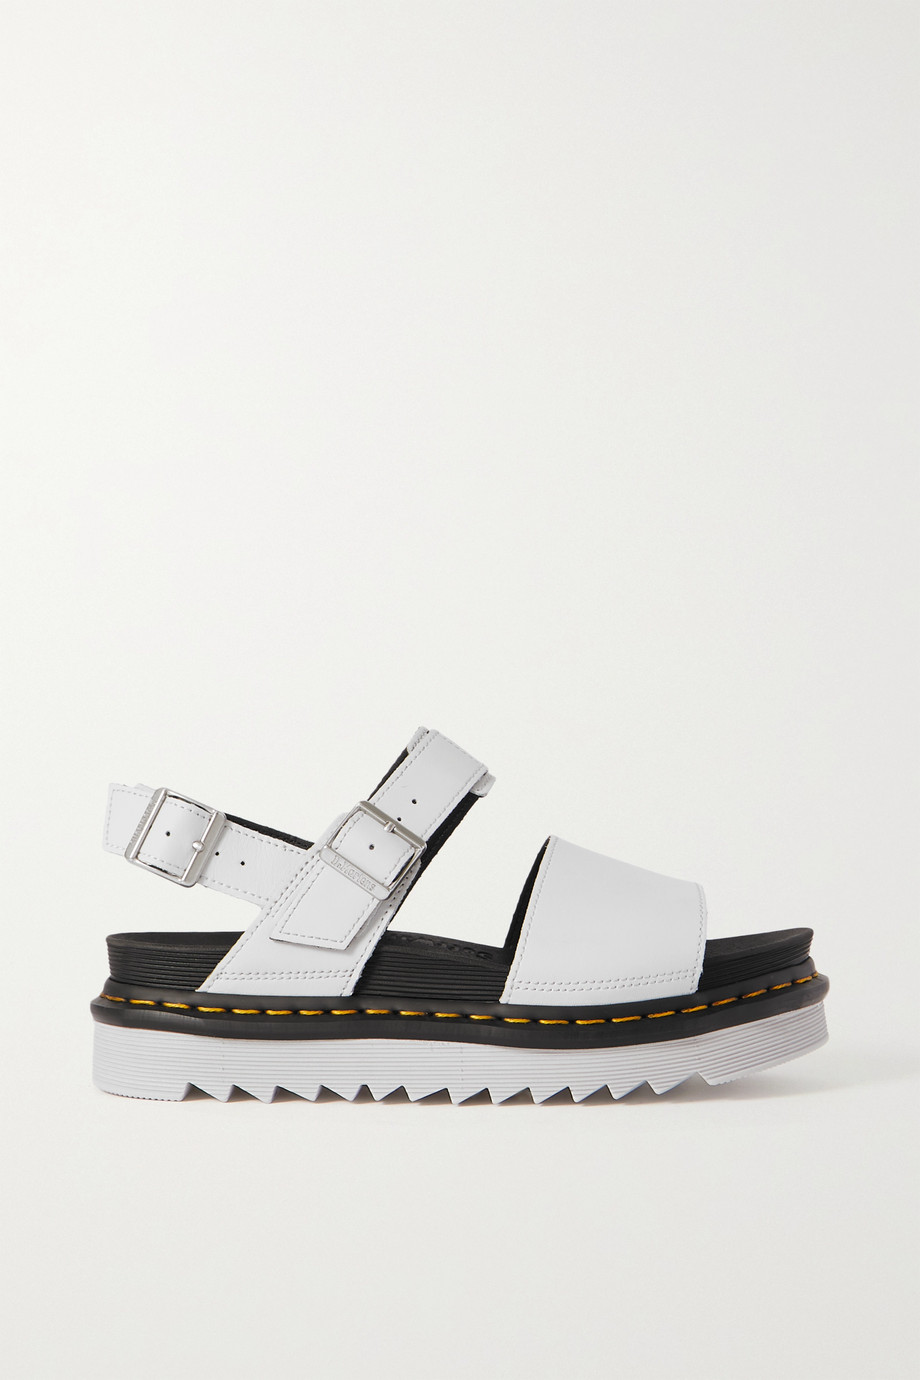 Dr. Martens Voss leather platform slingback sandals